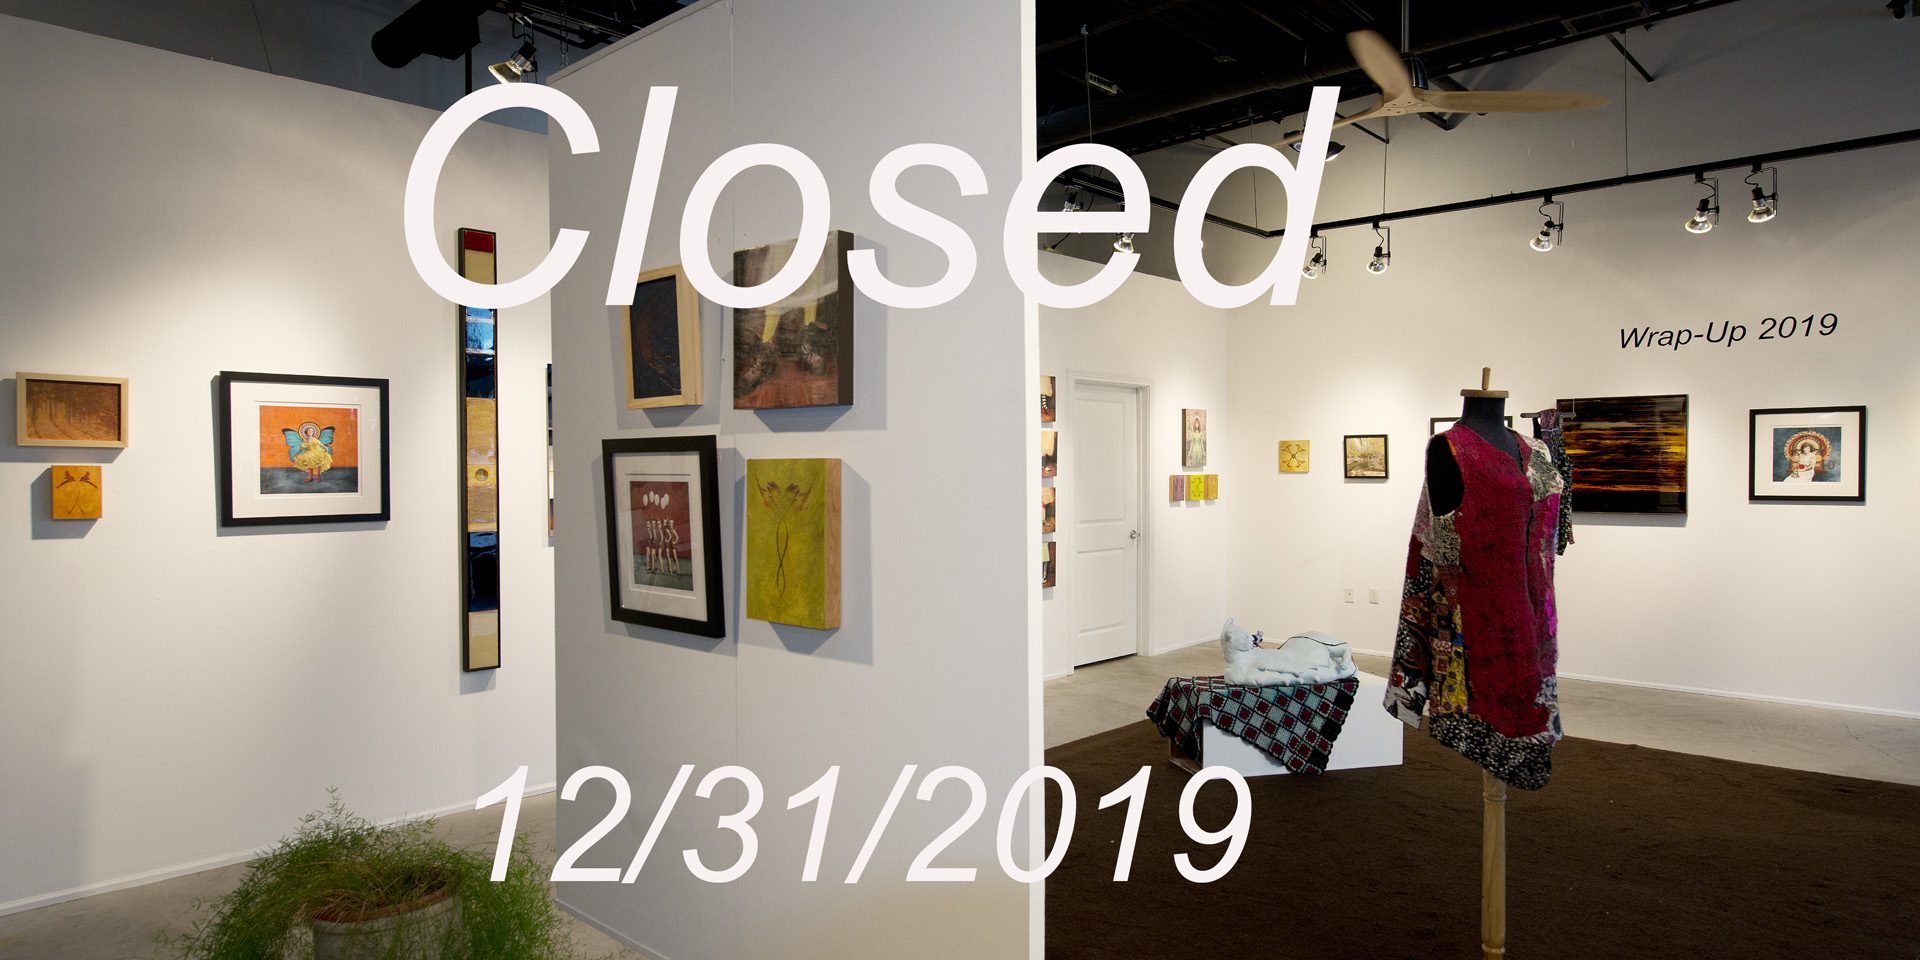 Gallery closed 12/31/2019